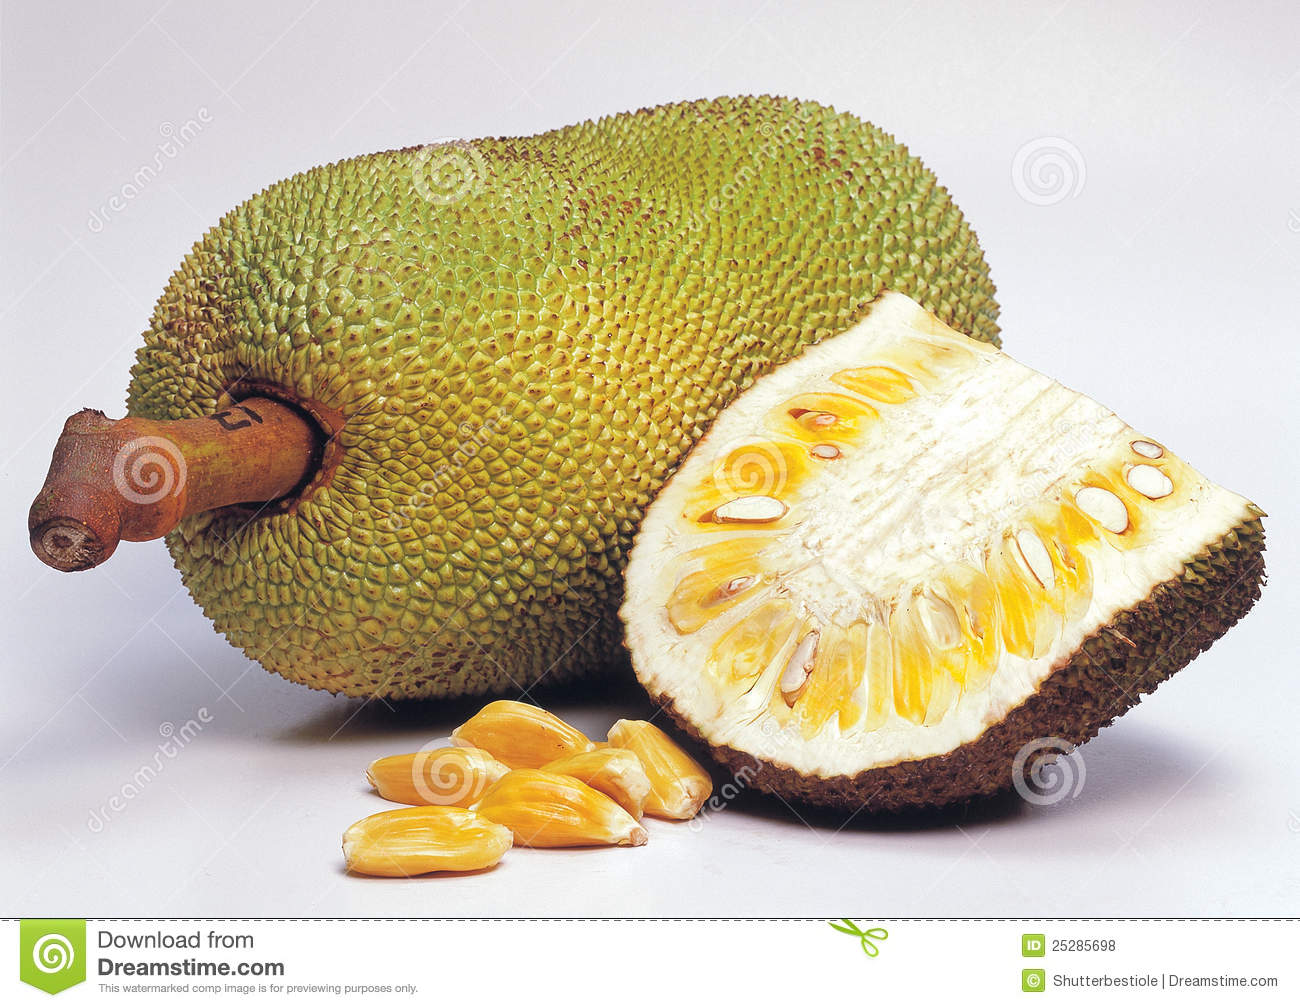 Jackfruit Royalty Free Stock Photos - Image: 25285698